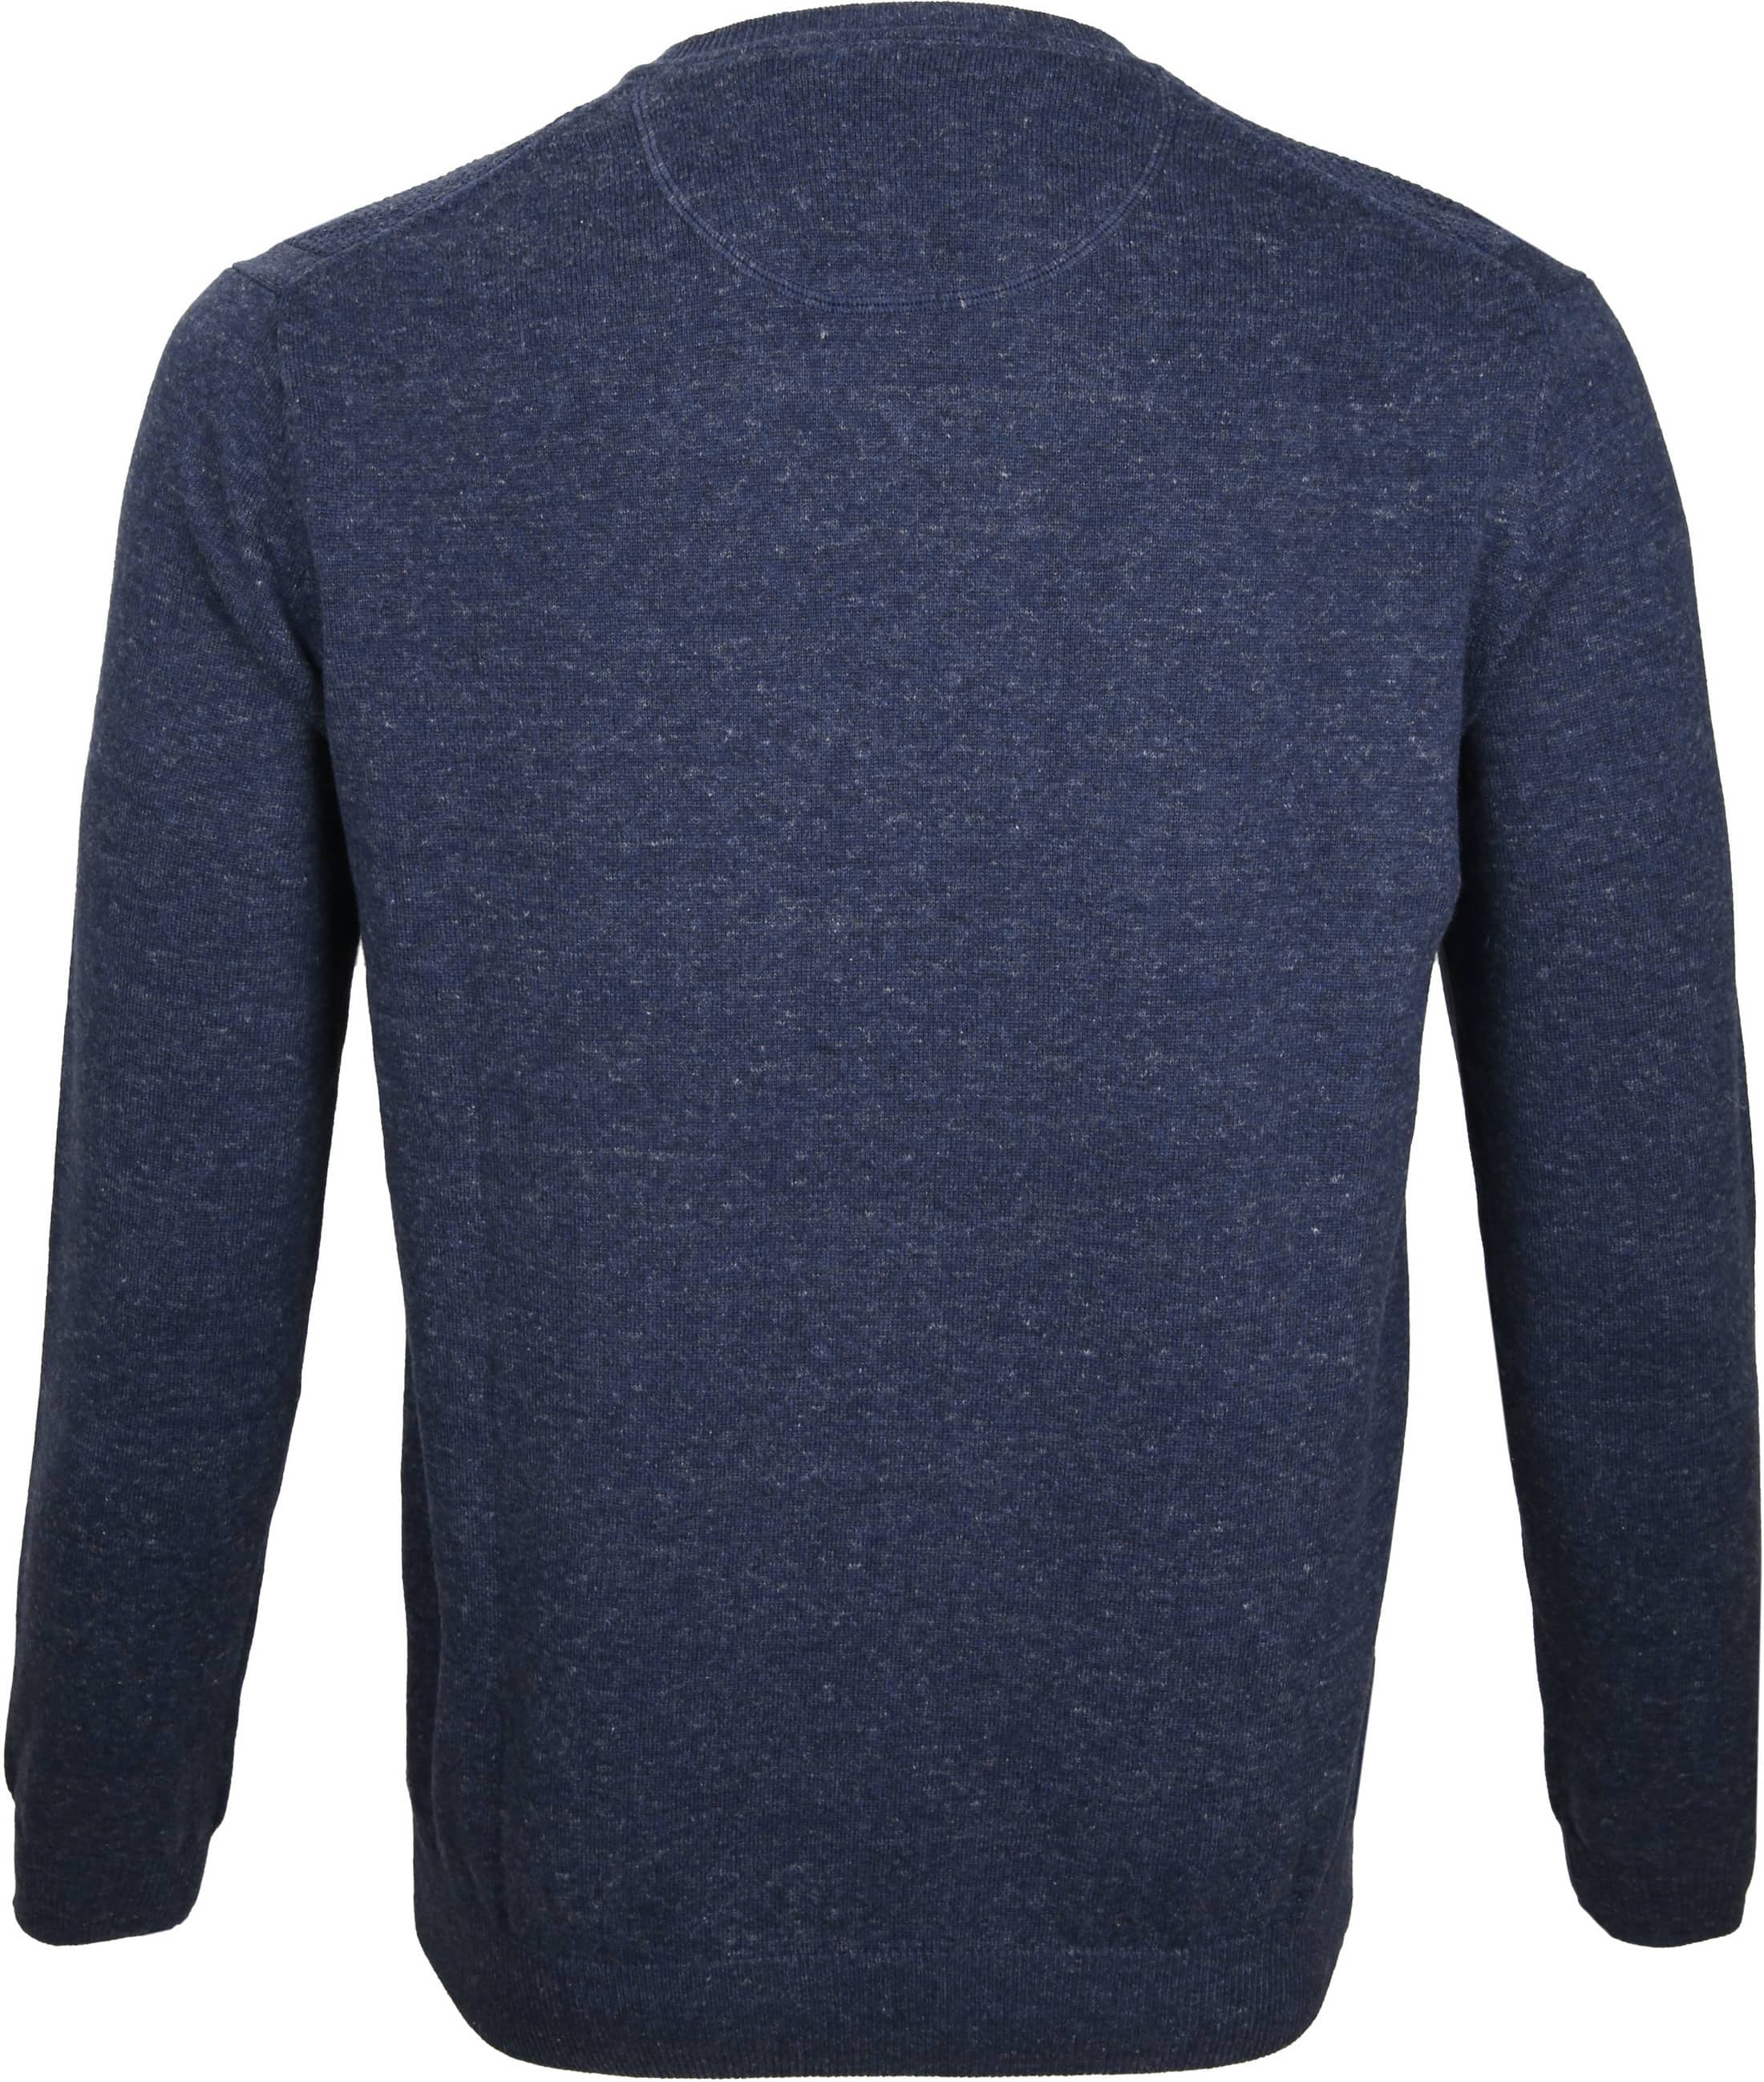 Suitable Pullover Basket Navy foto 3